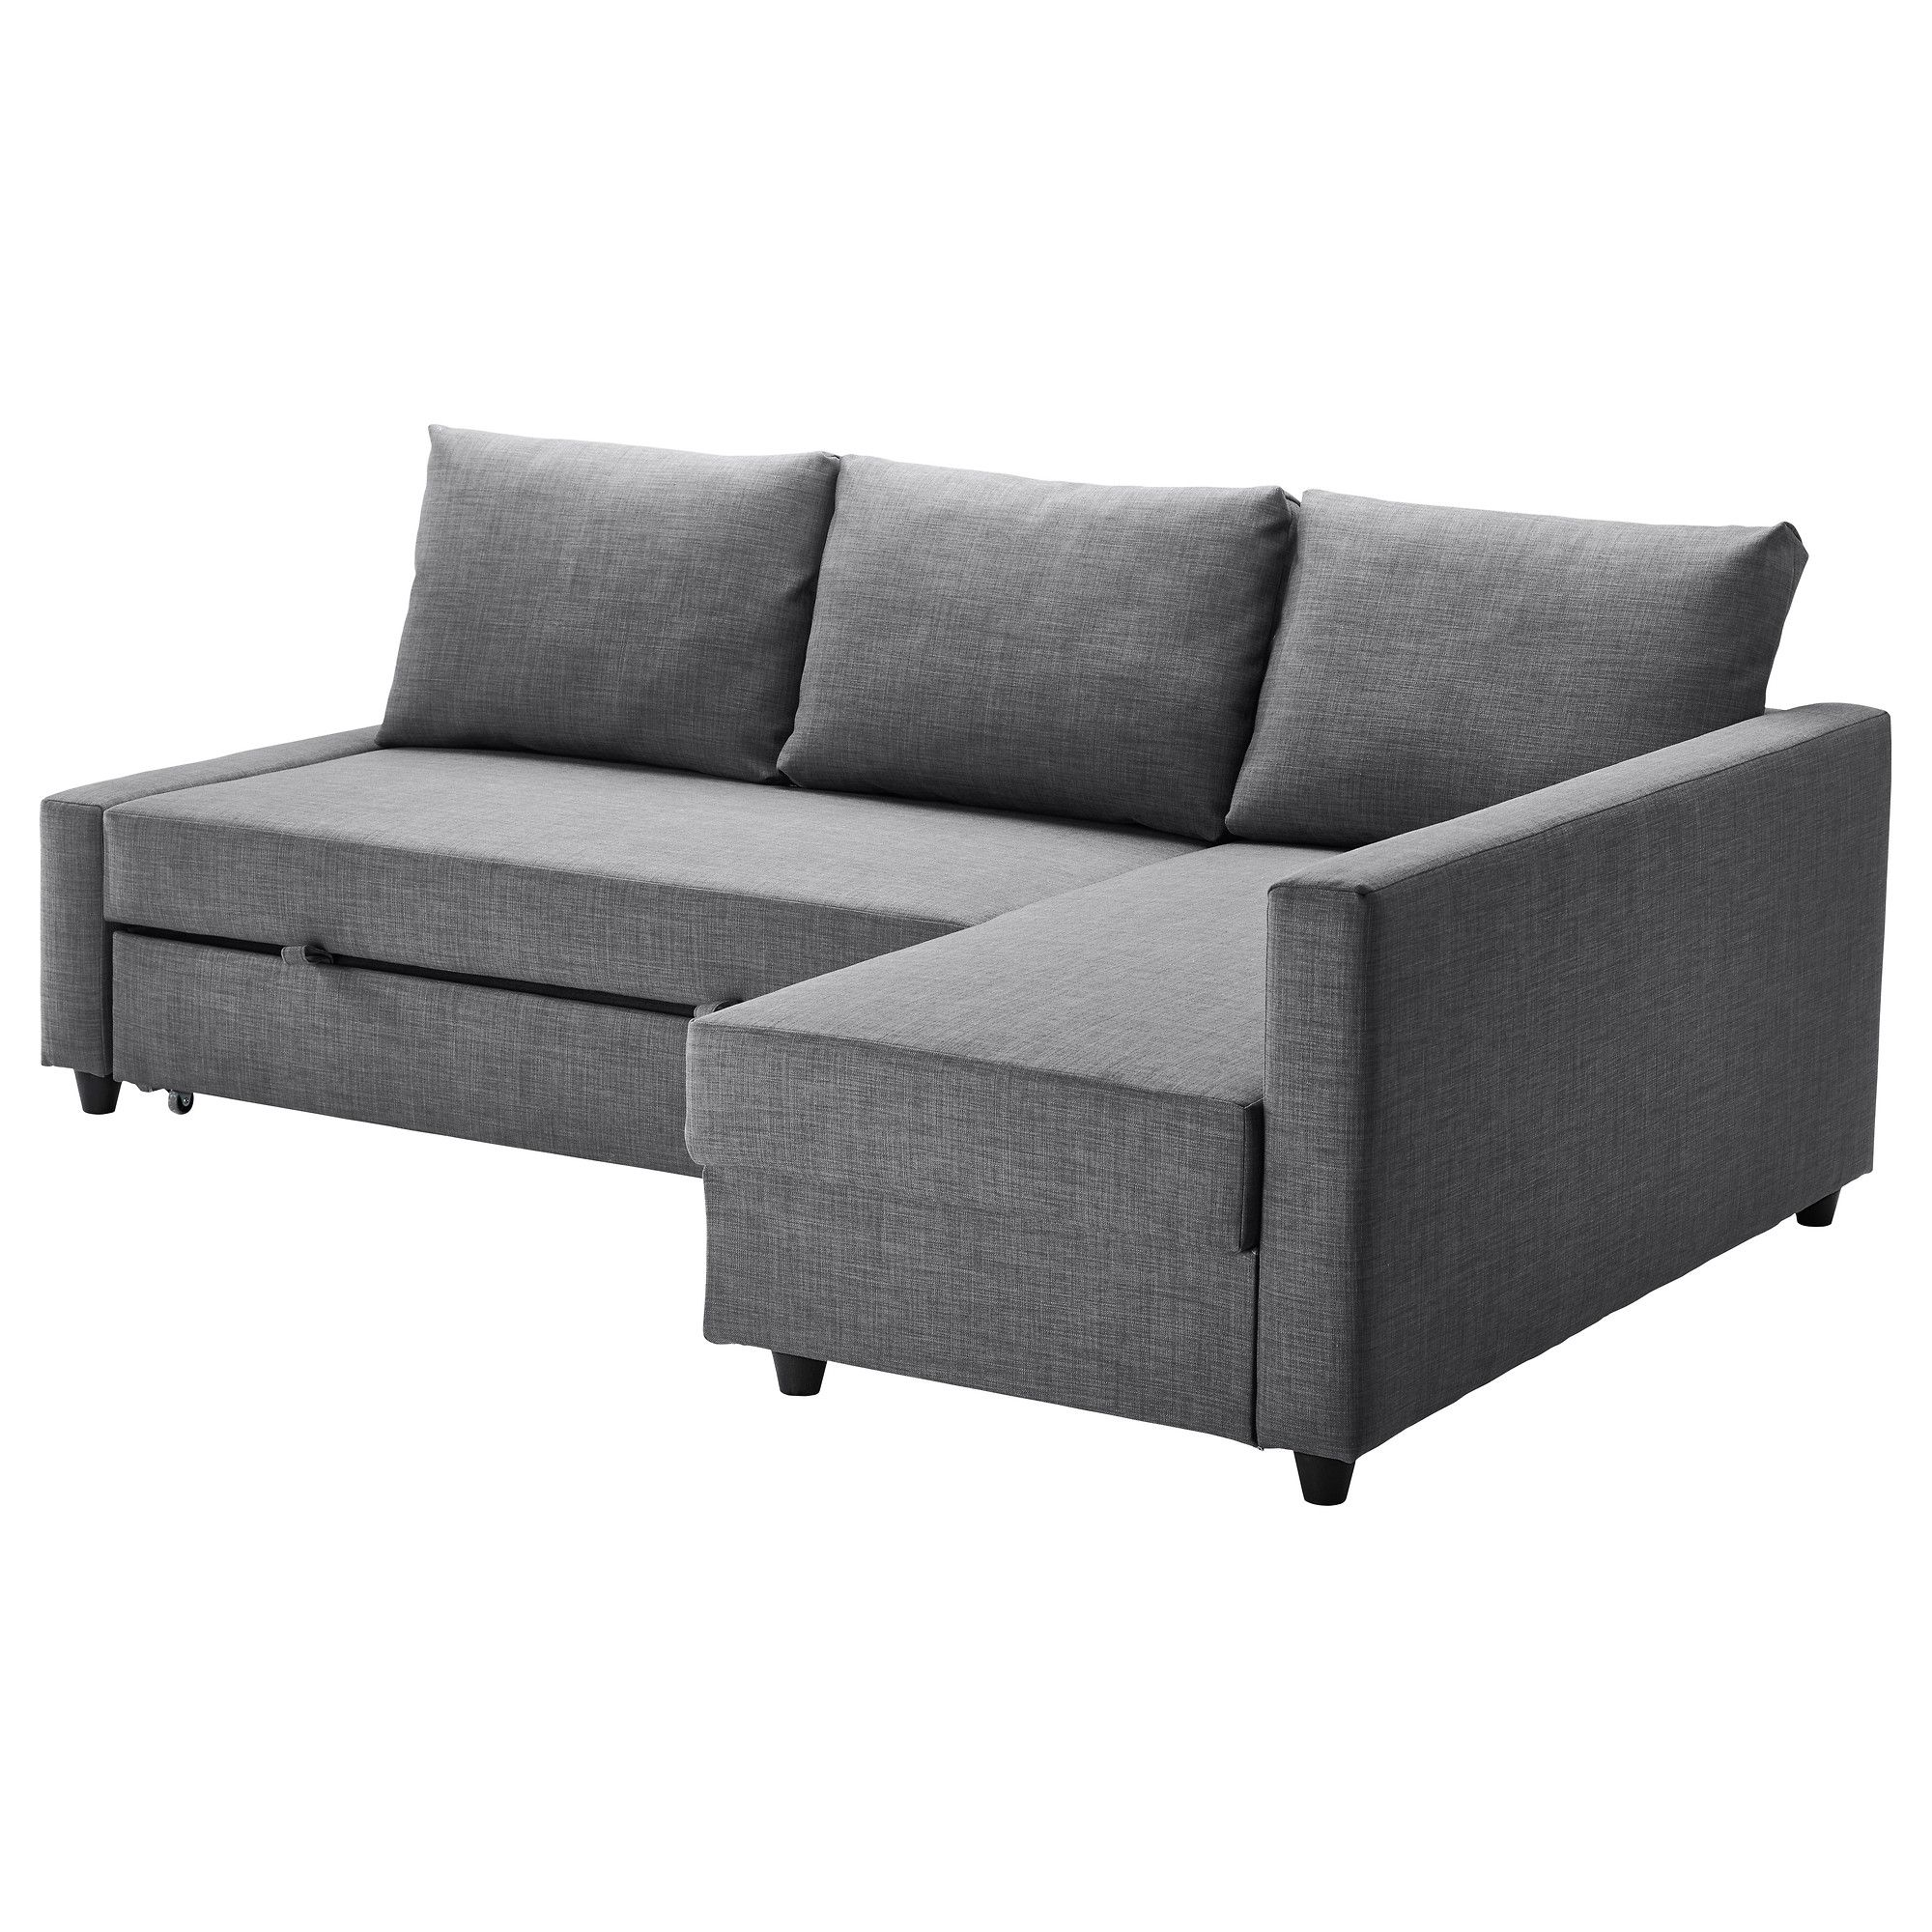 Eckbettsofa leder  IKEA - FRIHETEN, Sofa bed with chaise, Skiftebo dark gray, , , You ...